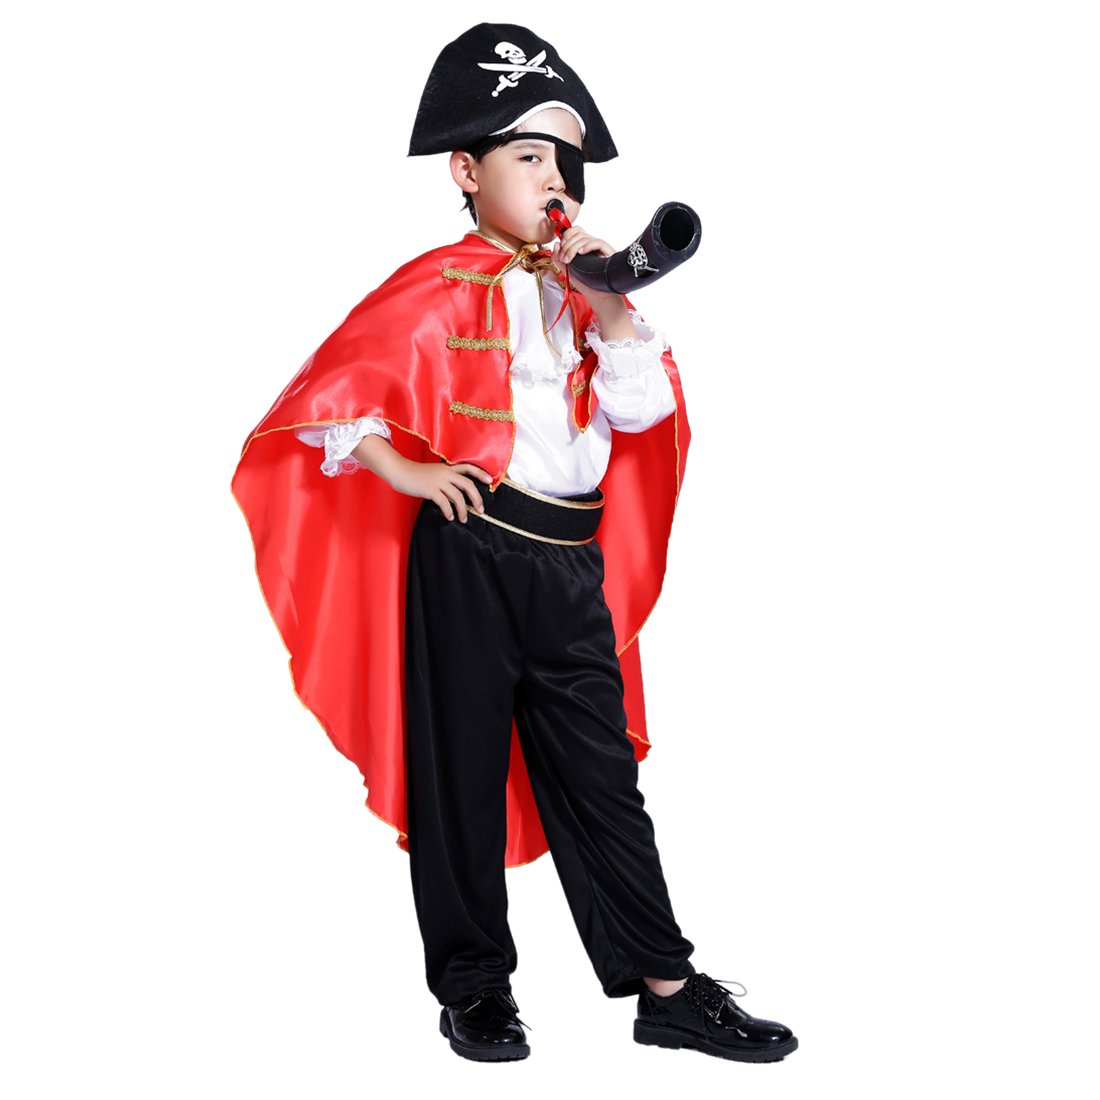 Kid's Party Halloween Pirate Cosplay Suit Captain Jack Costume Set for 4-6 Years Old - M L XL Size